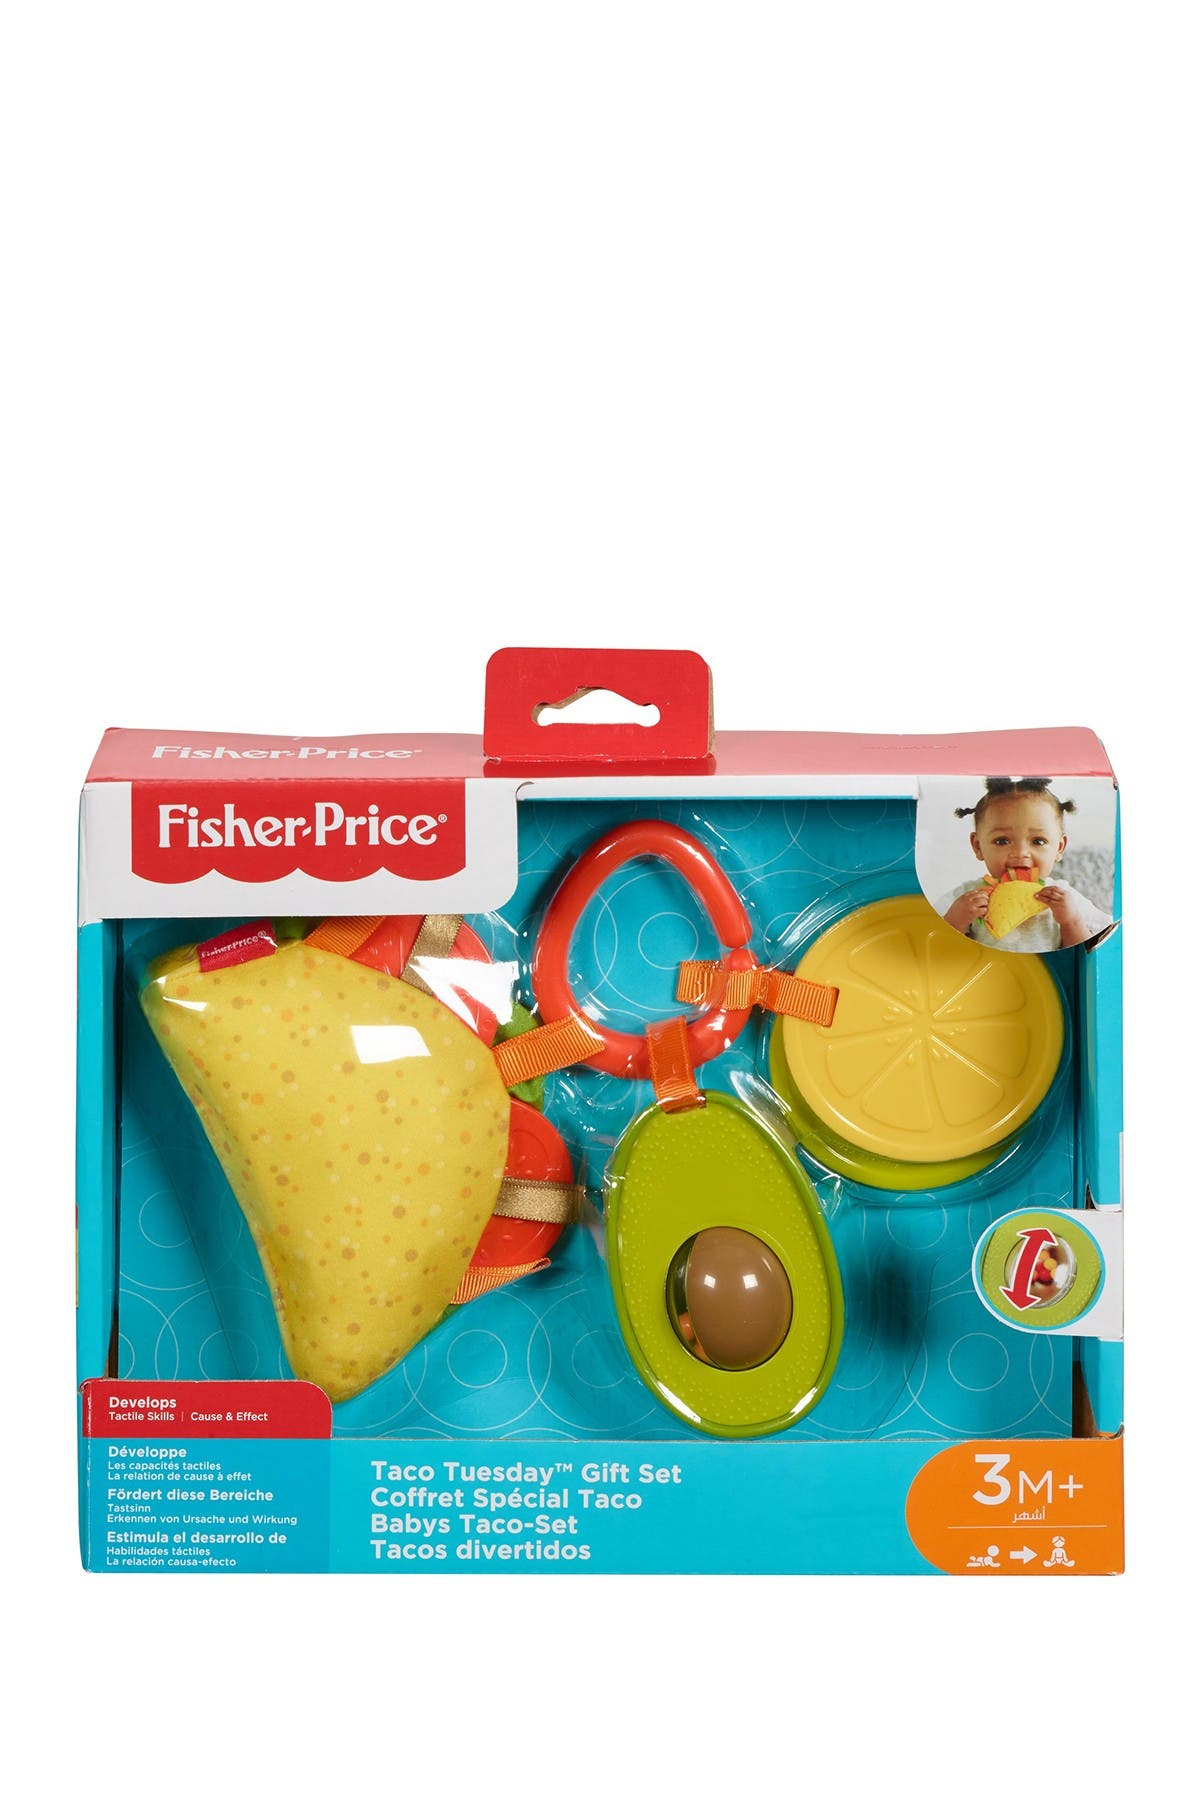 Image of Fisher-Price Taco Tuesday Gift Set